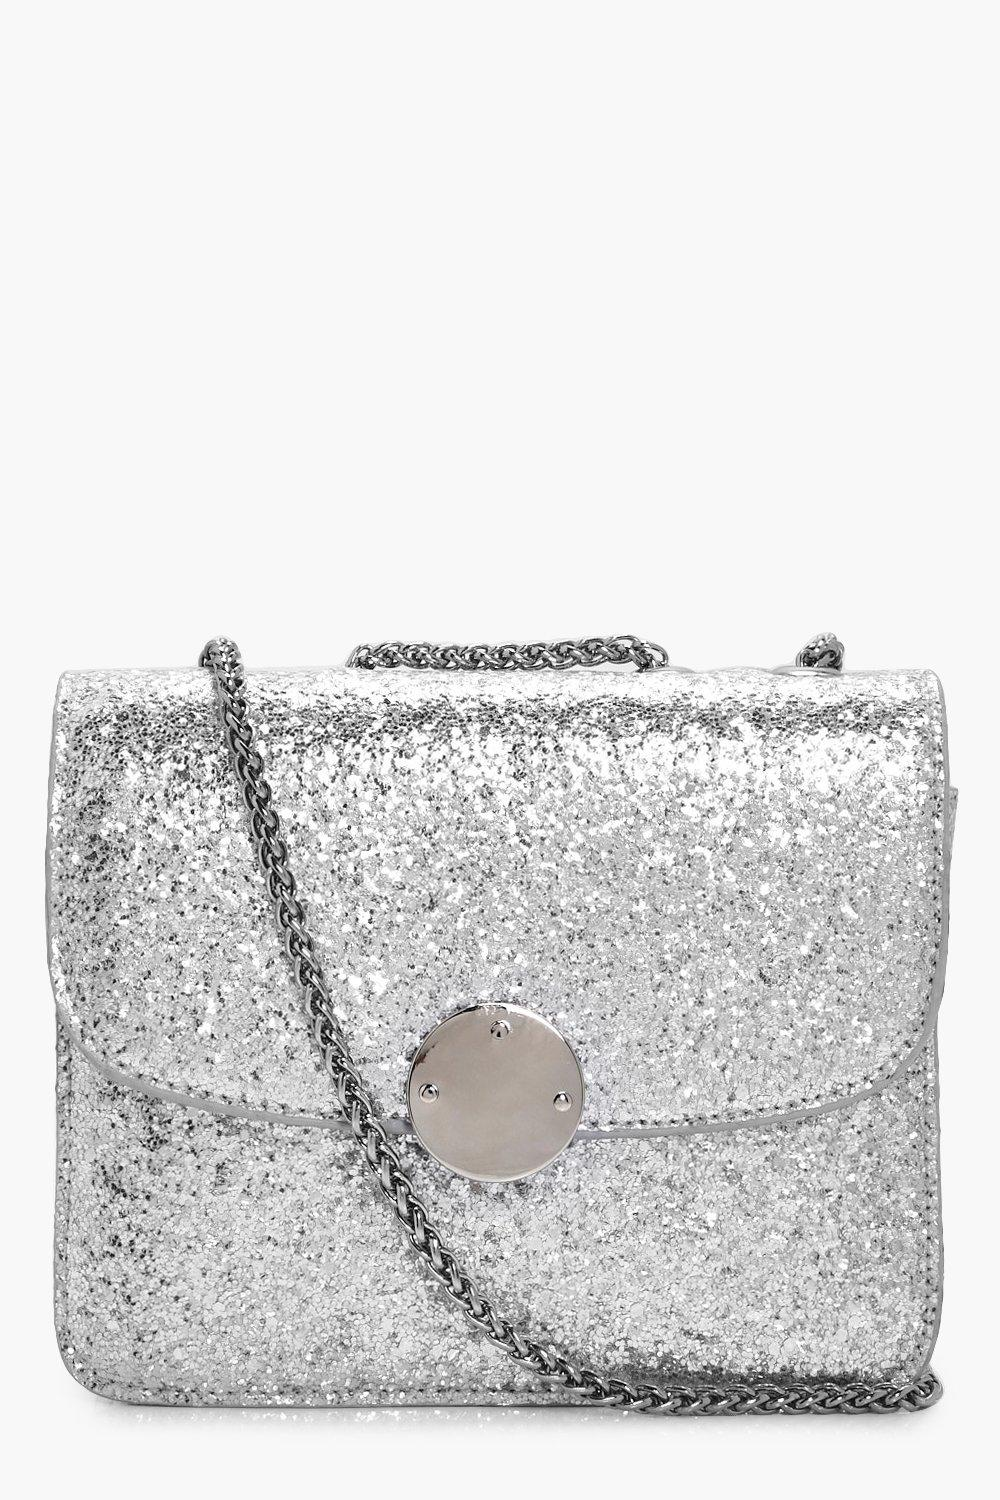 Sequin Metal Clasp Cross Body Bag - silver - Ella